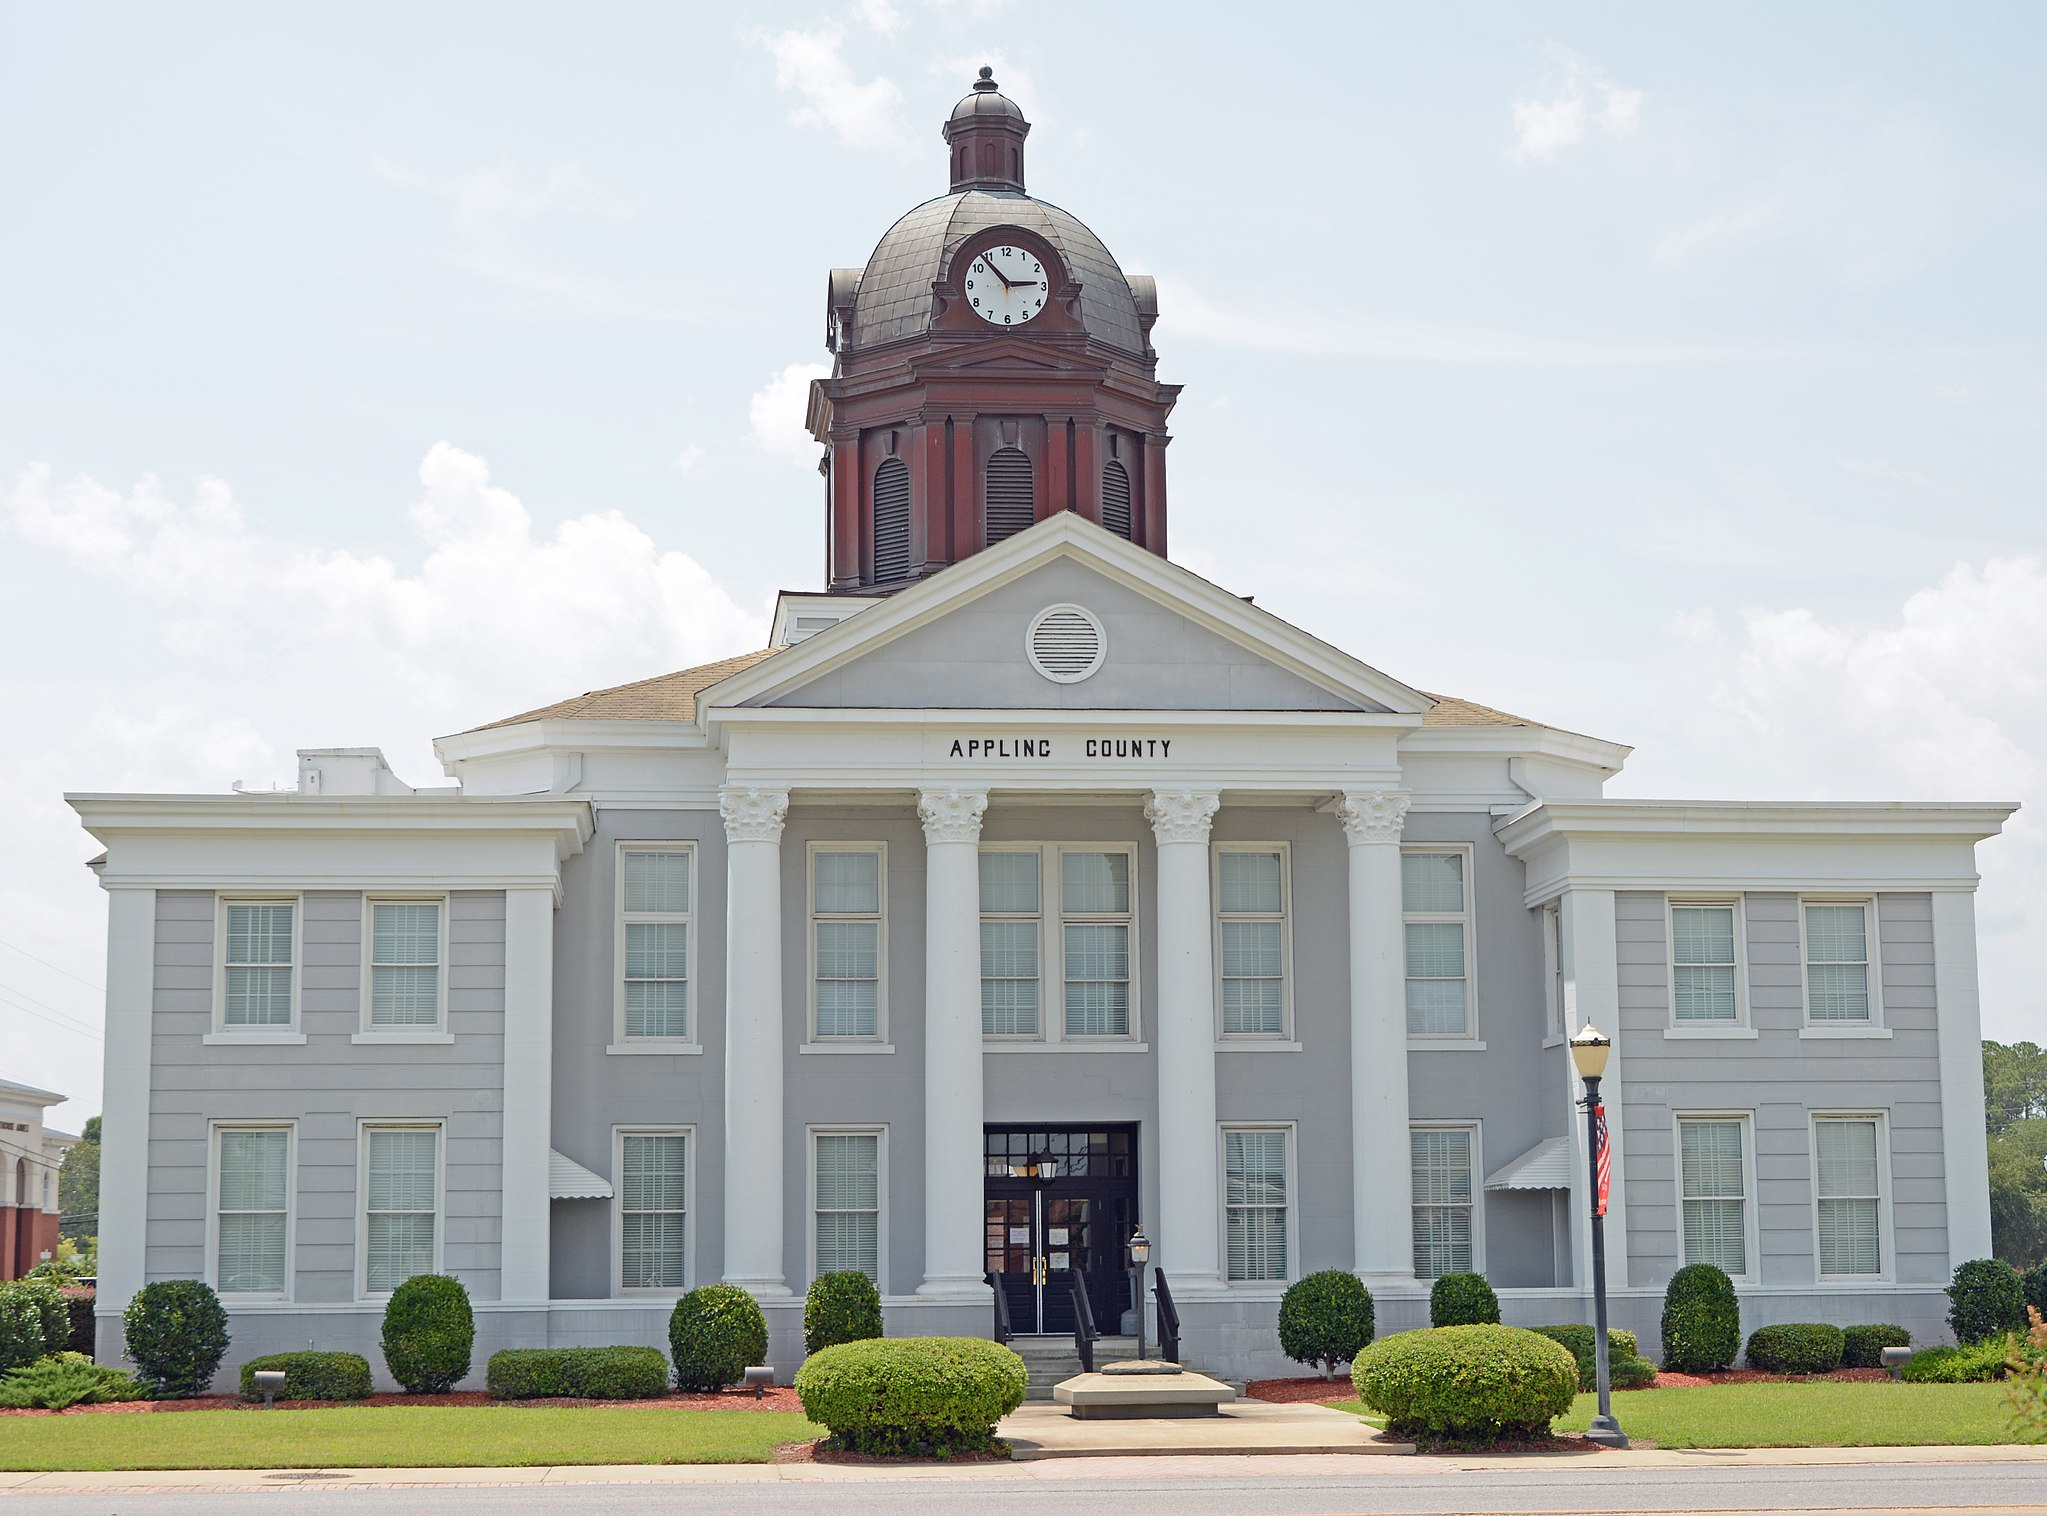 Appling County Courthouse, Baxley, GA, US